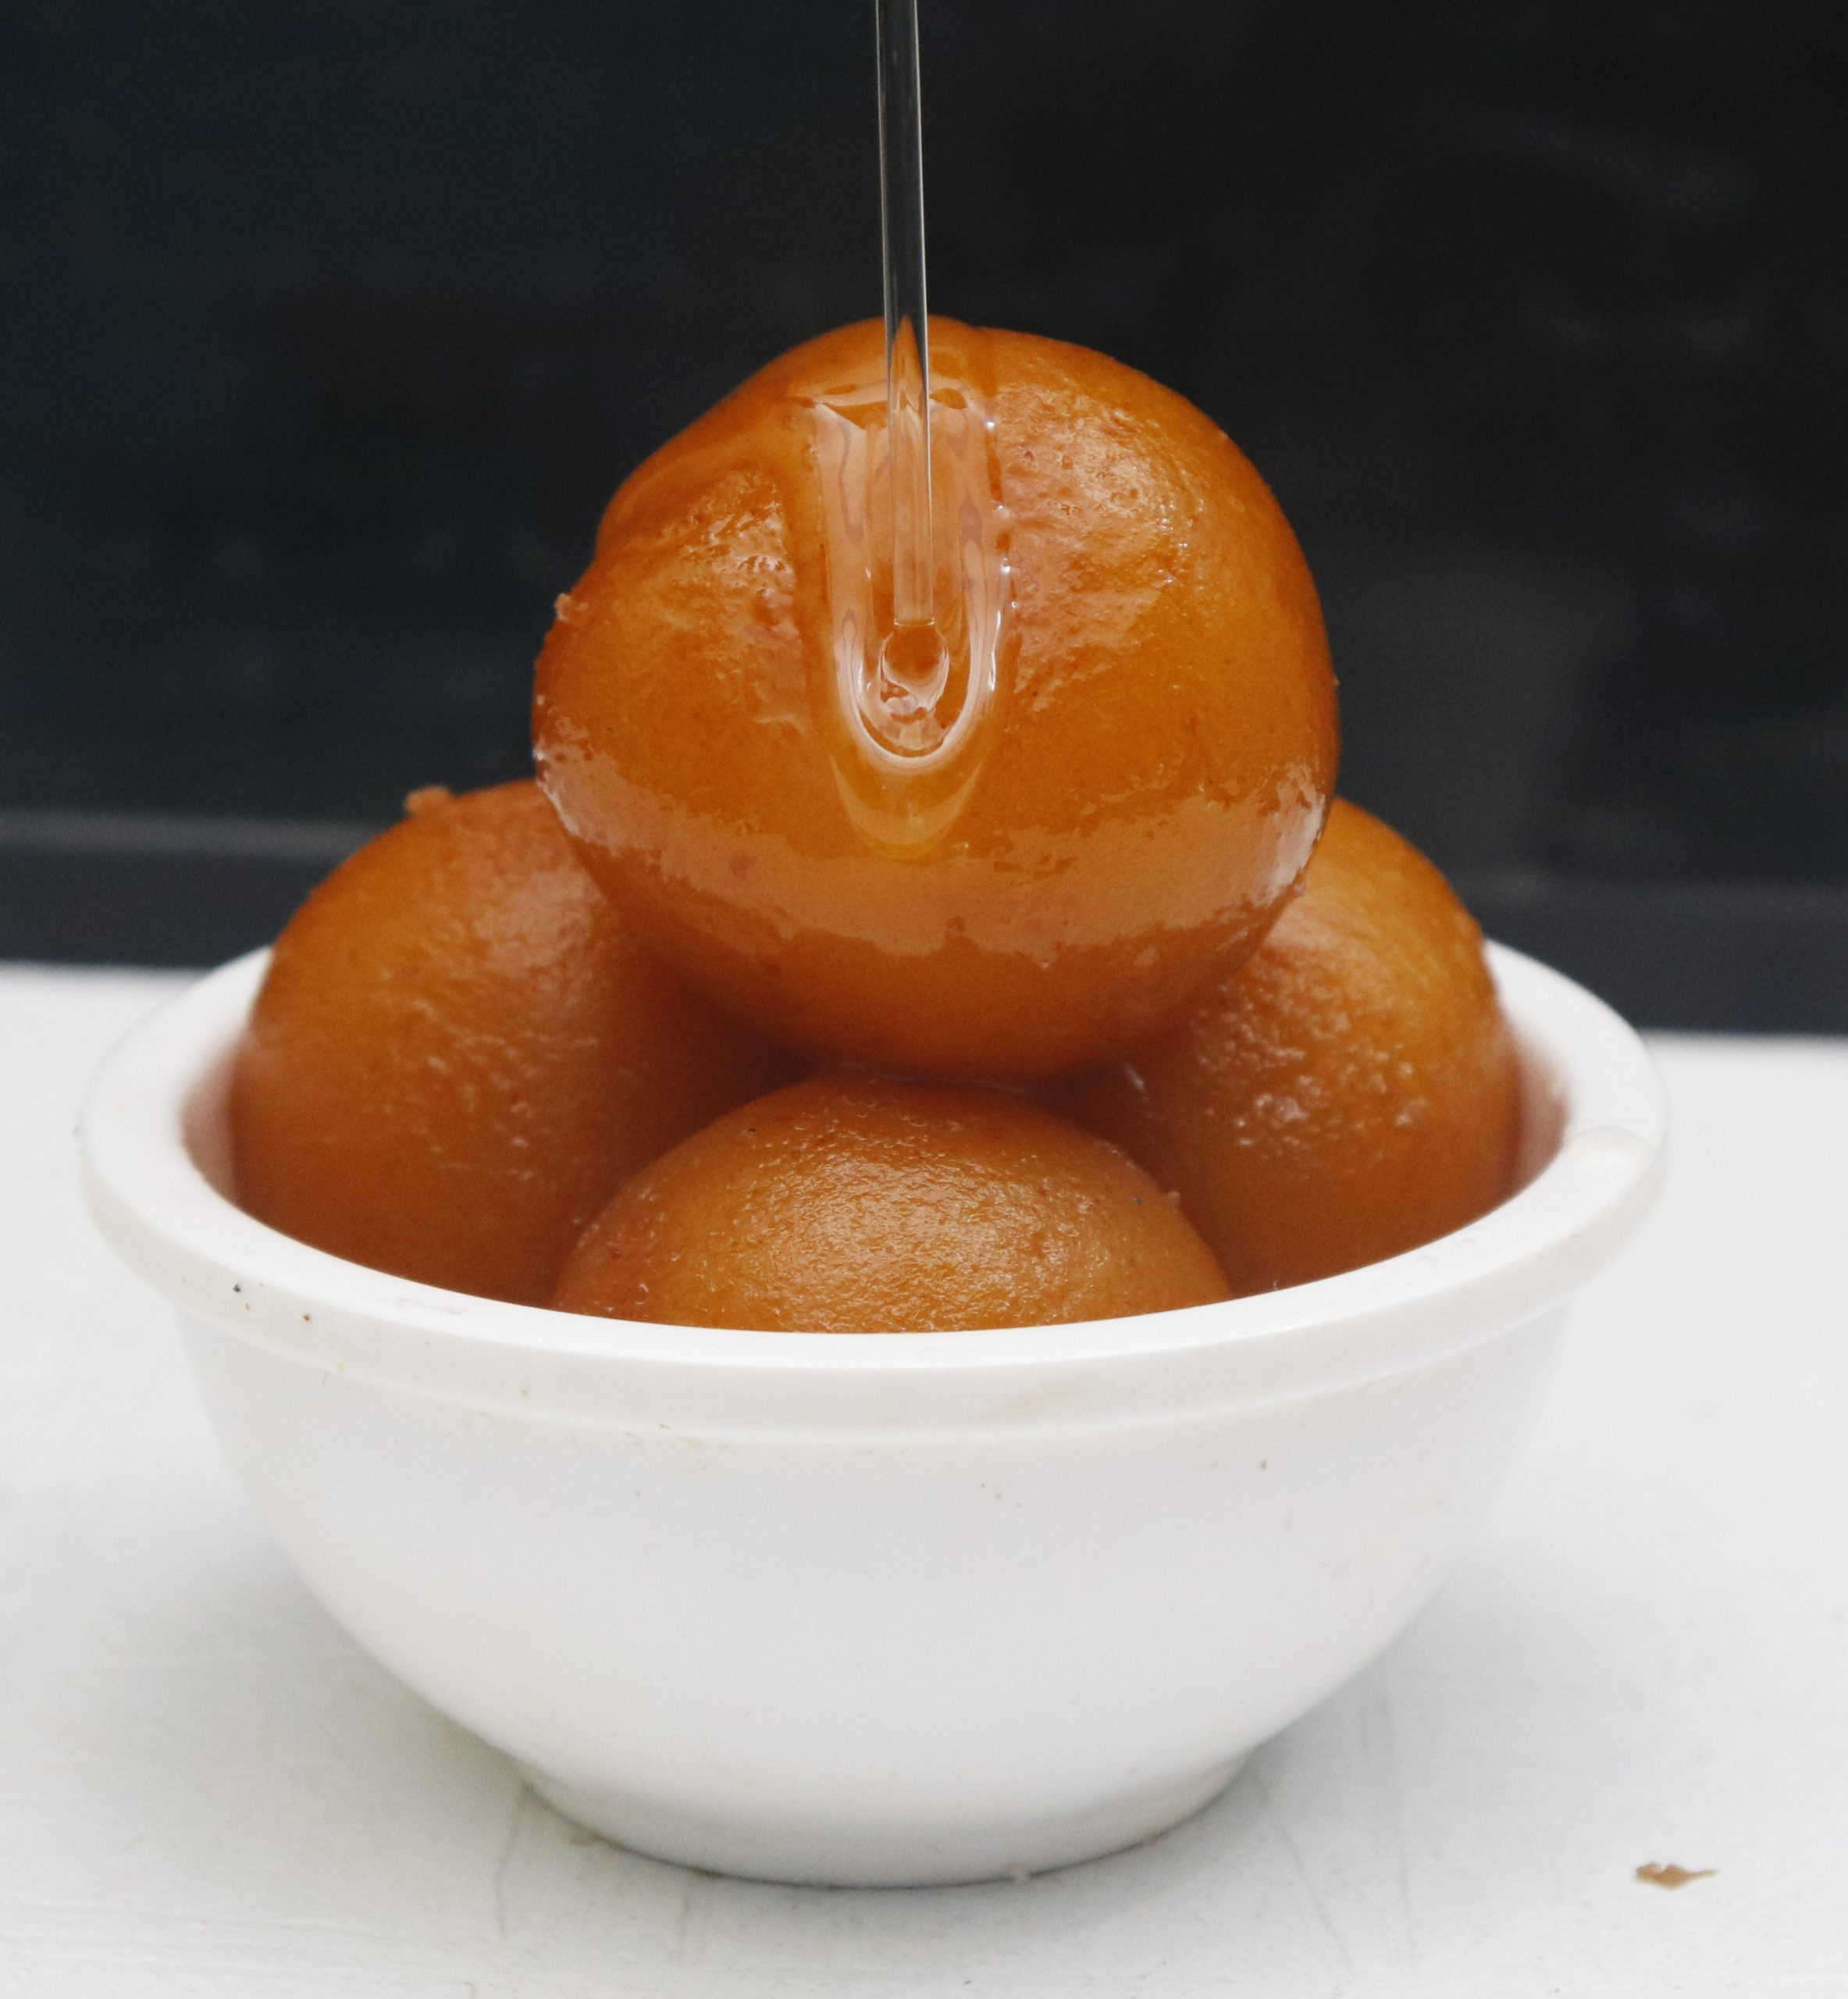 Indian Sweet Dish